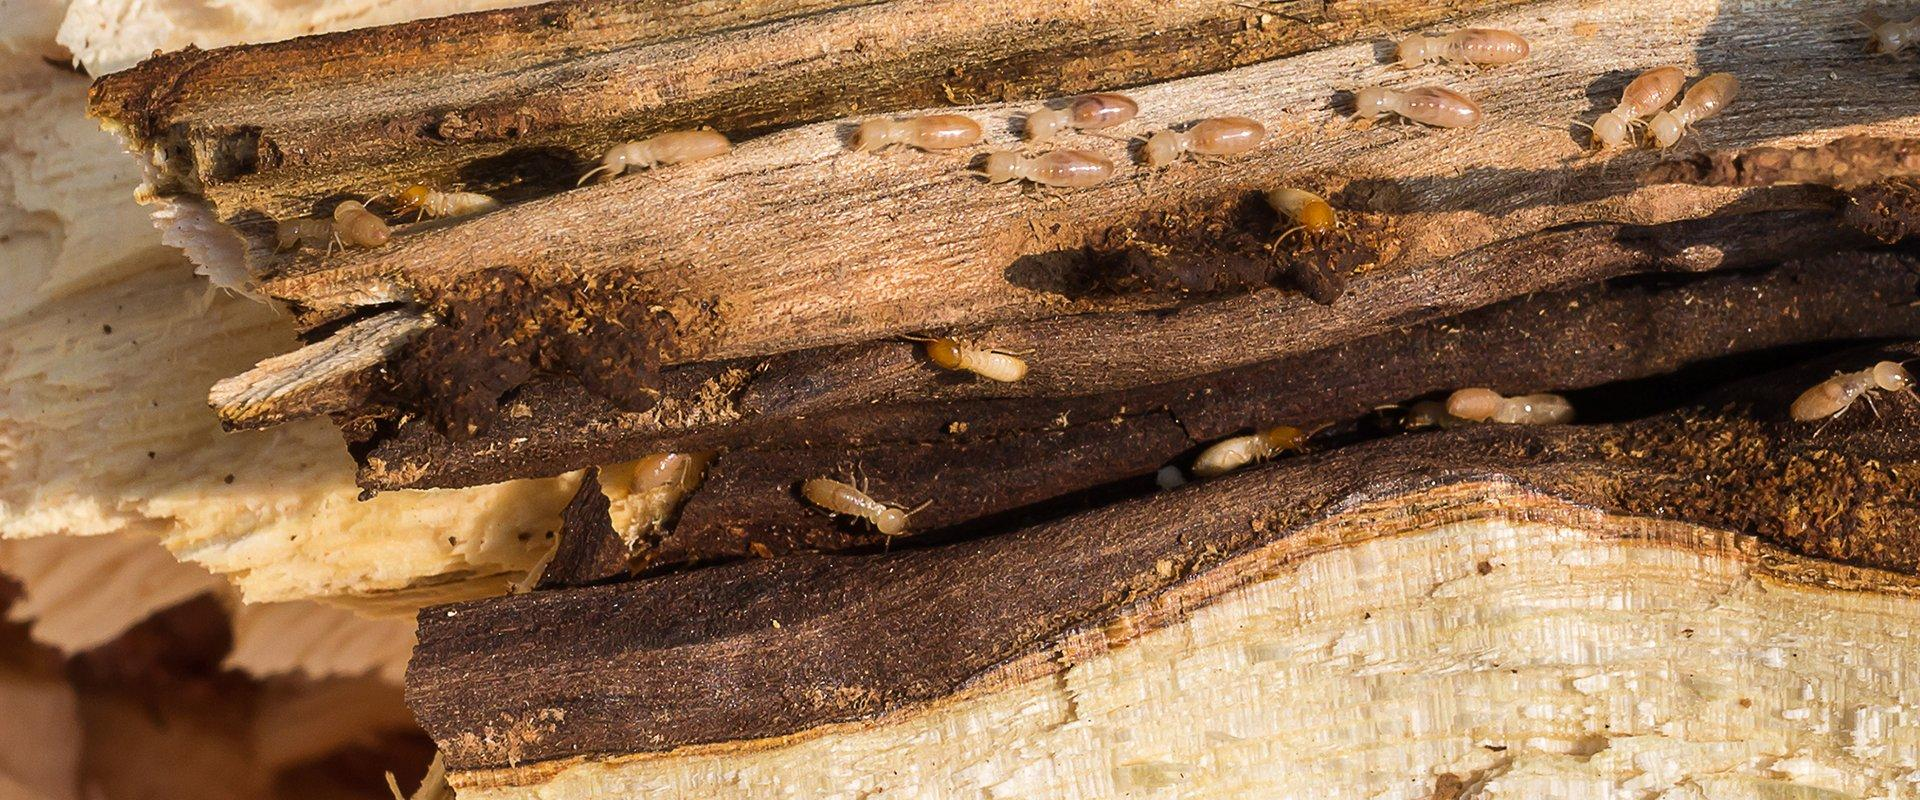 many termites crawling on damaged wood at a home in providenciales